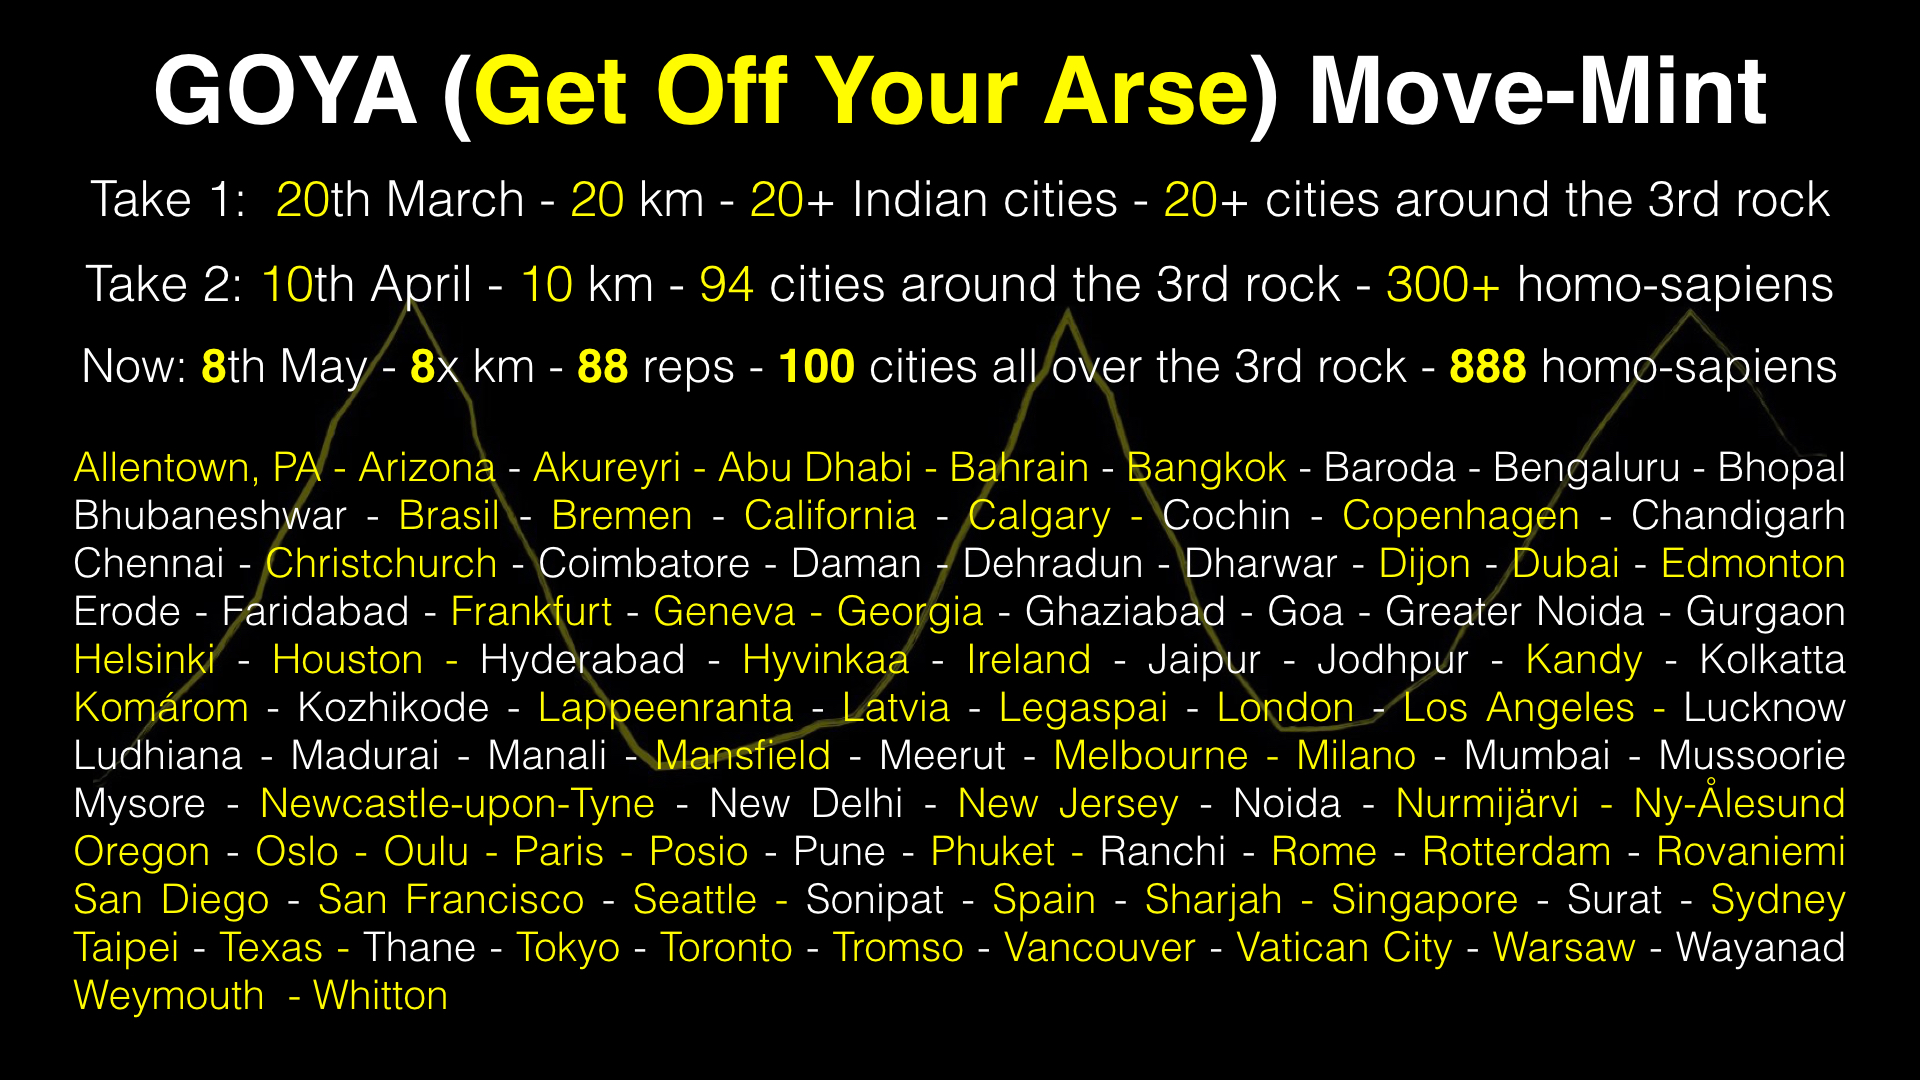 We've got 100 cities from across the globe. Join in. For yourself. 100th city being Warsaw. :)